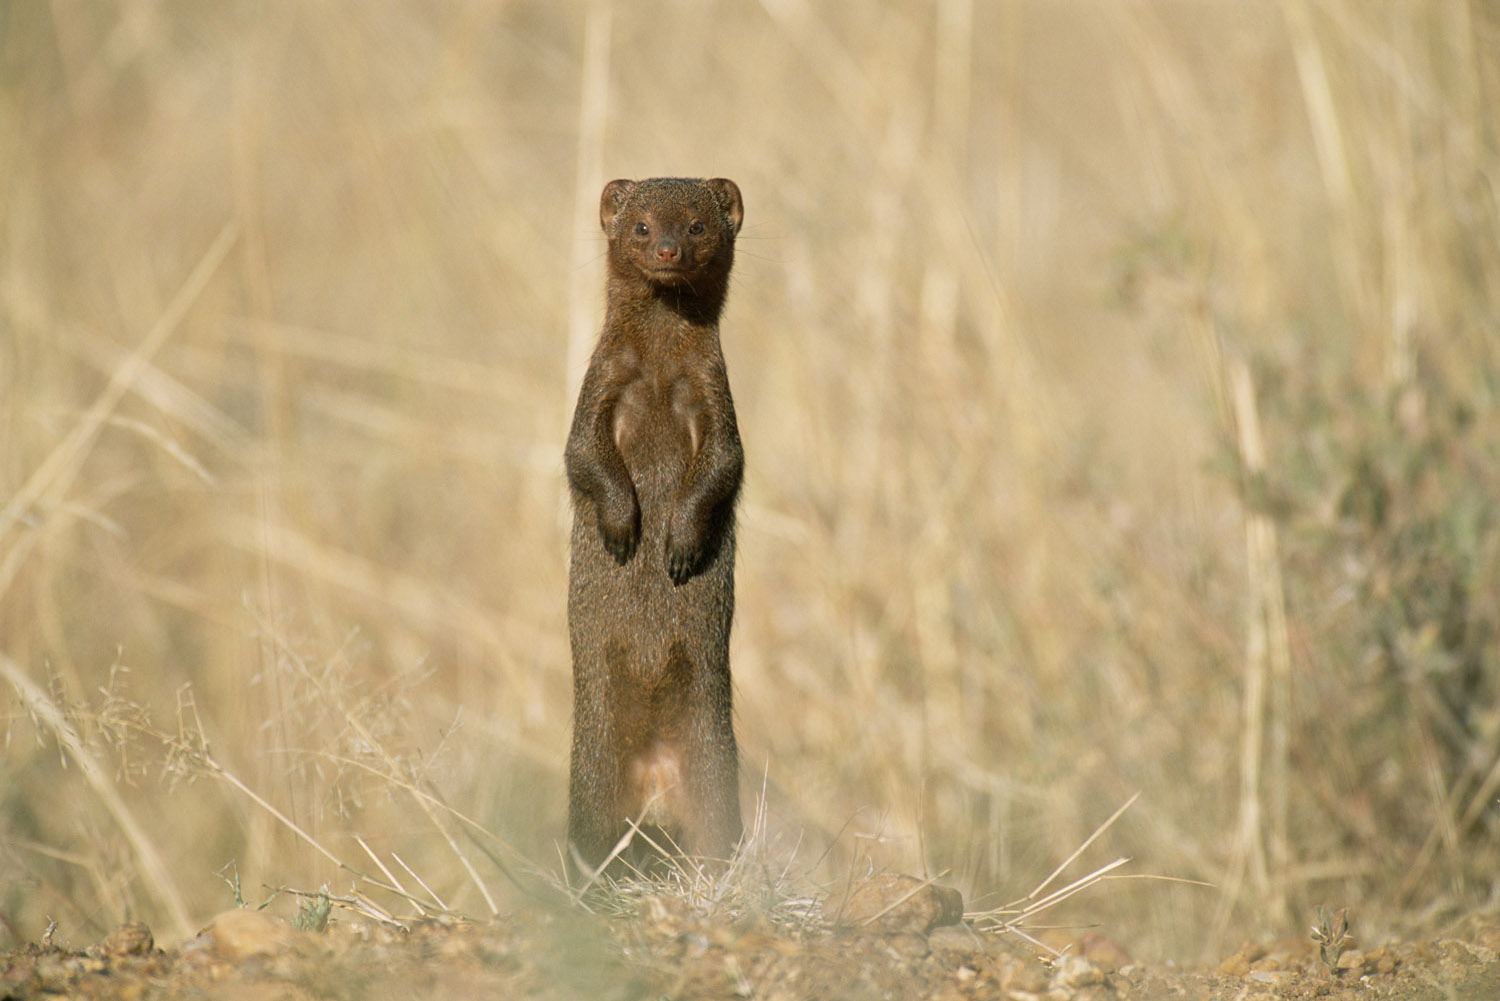 Dwarf mongoose on alert, Laikipia, Kenya